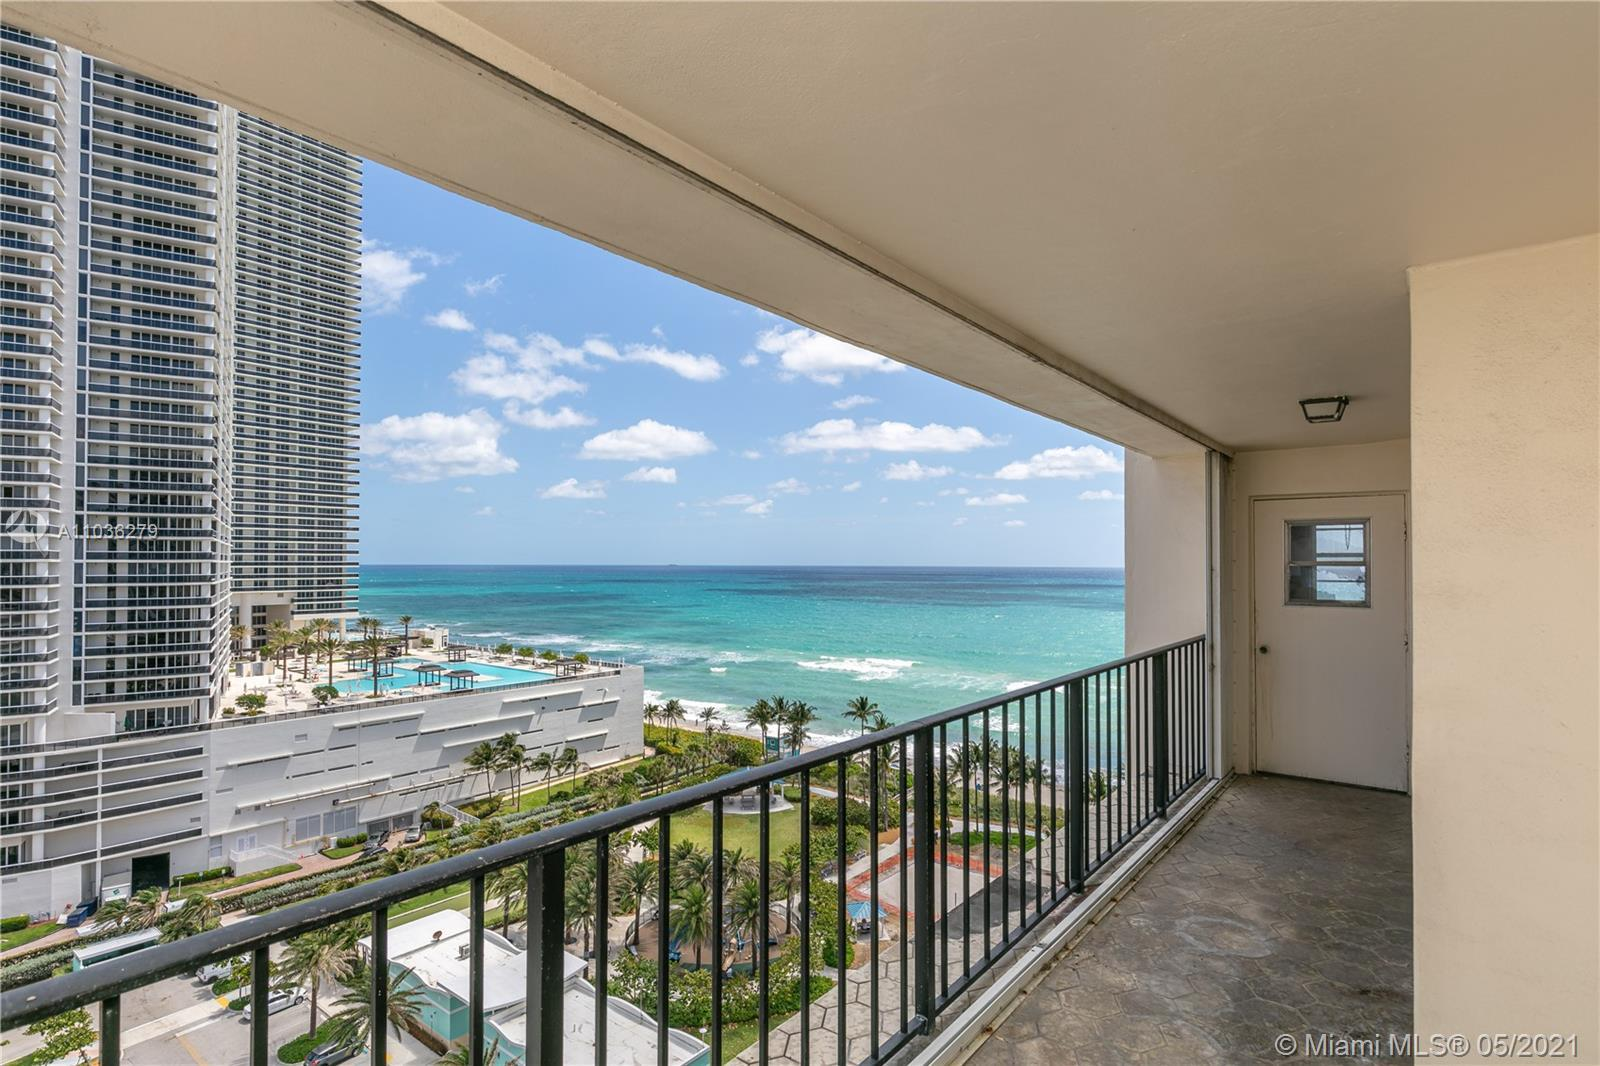 Massive 3BR/3BA Tower Suite with double-sized balcony and views that will sweep you off of your feet